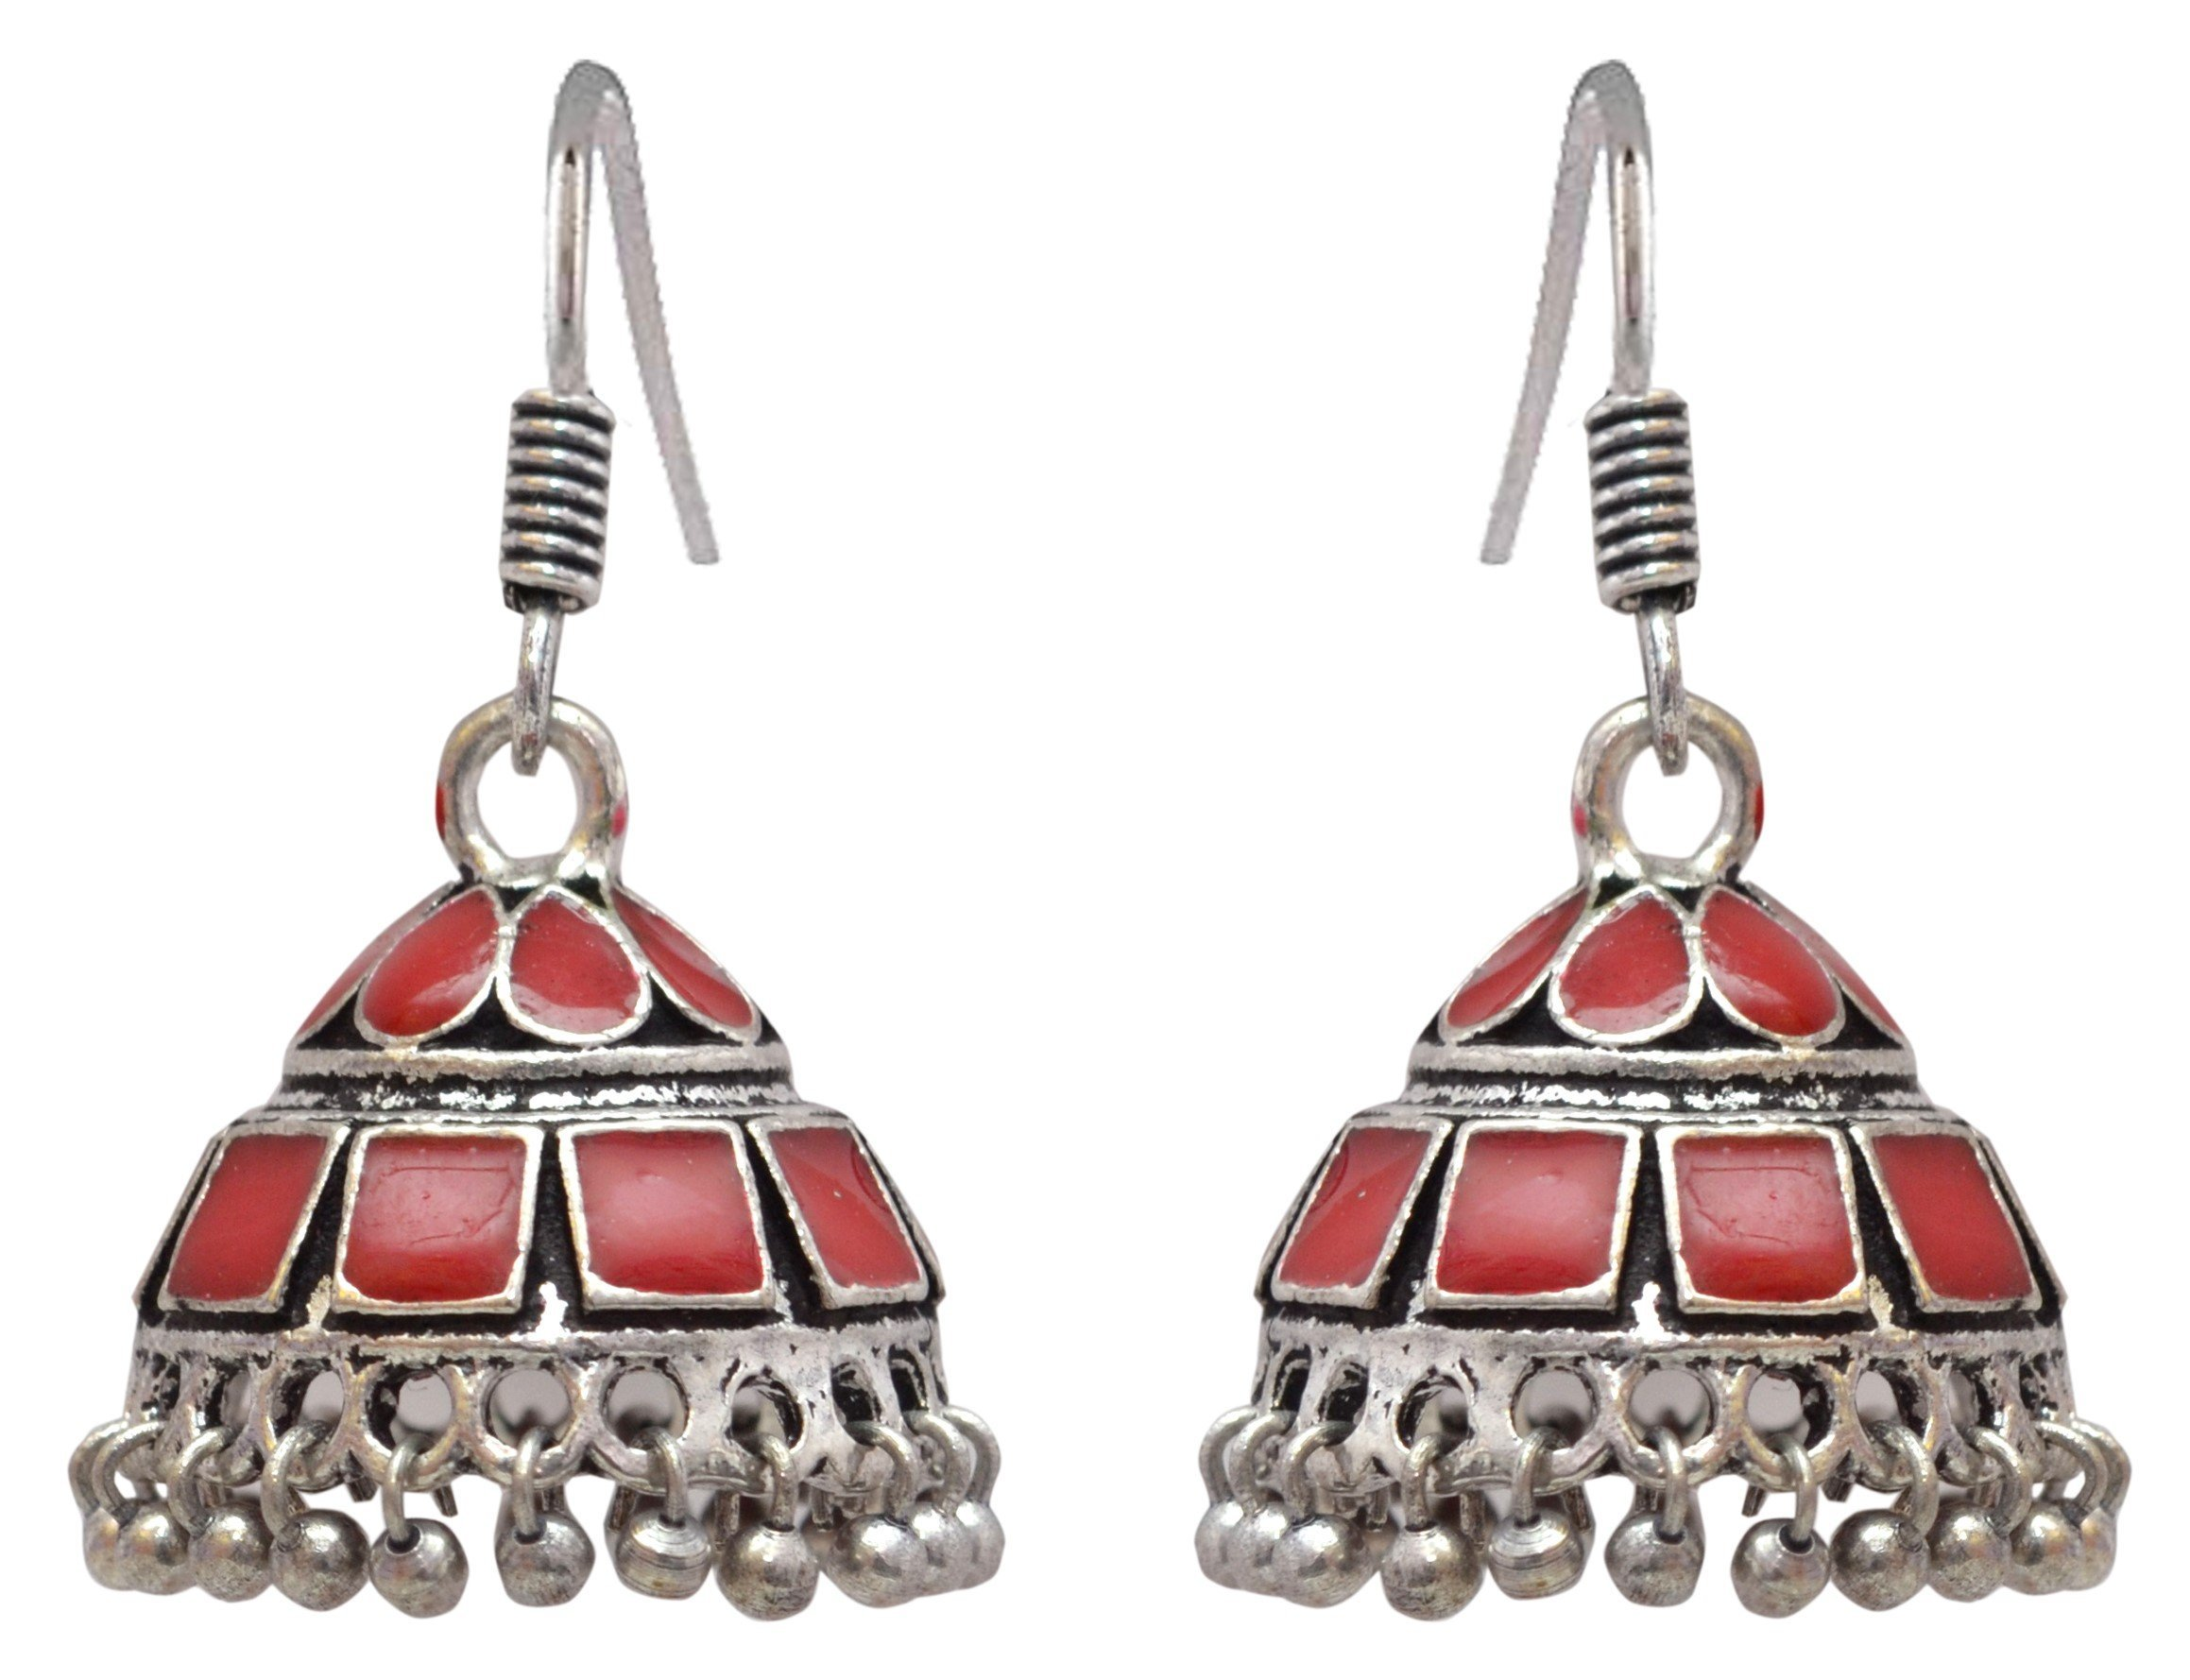 Sansar India Enamel Lightweight Jhumka Indian Earrings Jewelry for Girls and Women 1383 by Sansar India (Image #1)